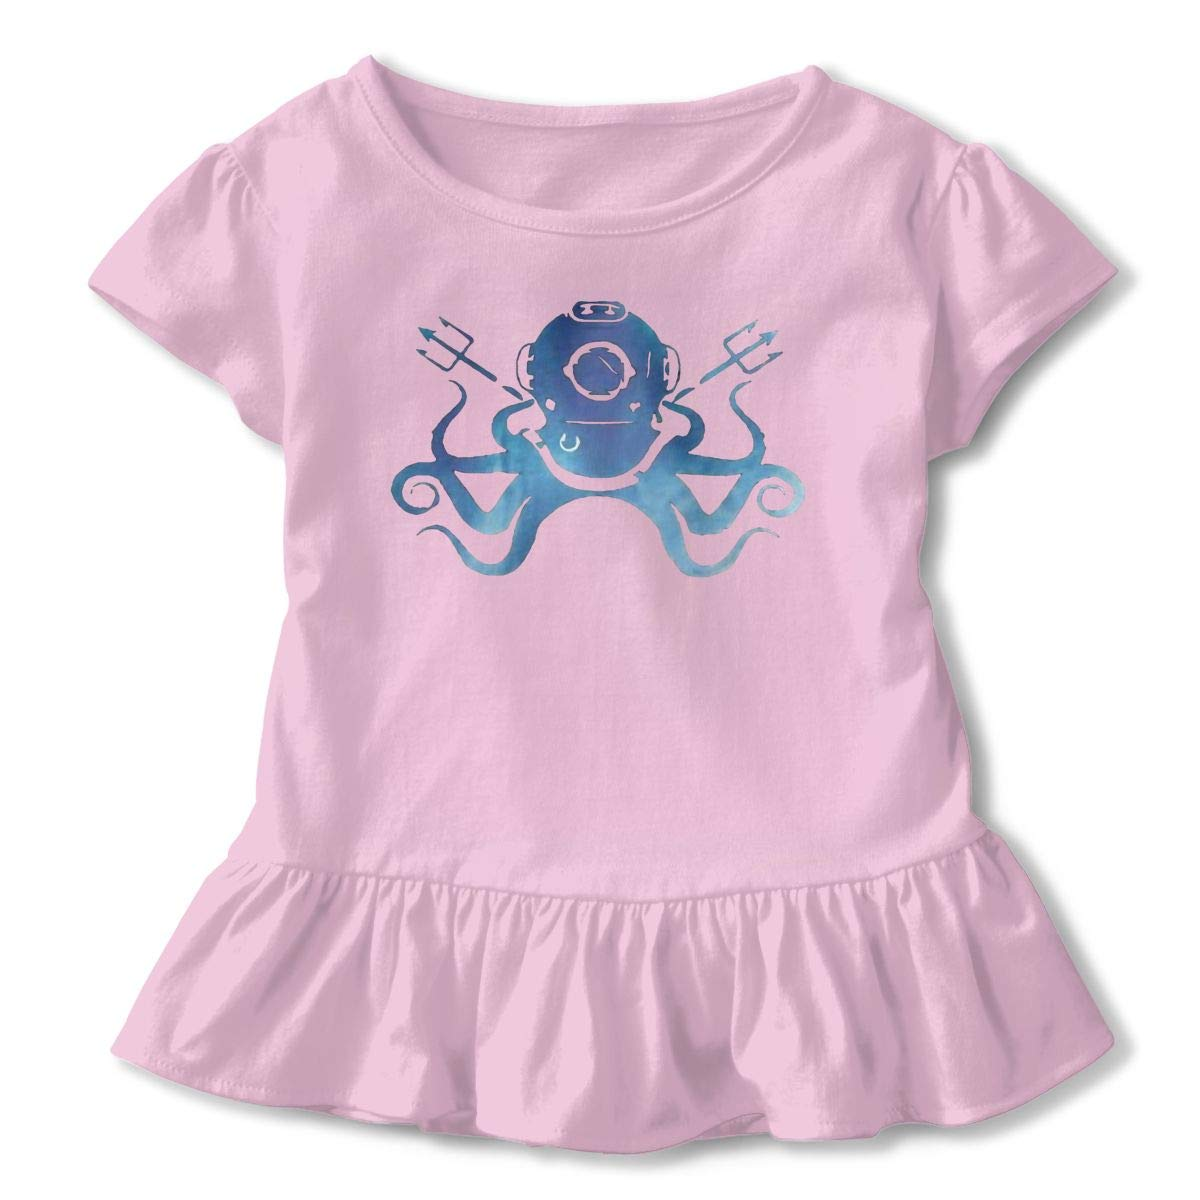 Octopus Toddler Girls Round Neck Ruffle Short Sleeves Top Tunic for Home School As Gift for Children